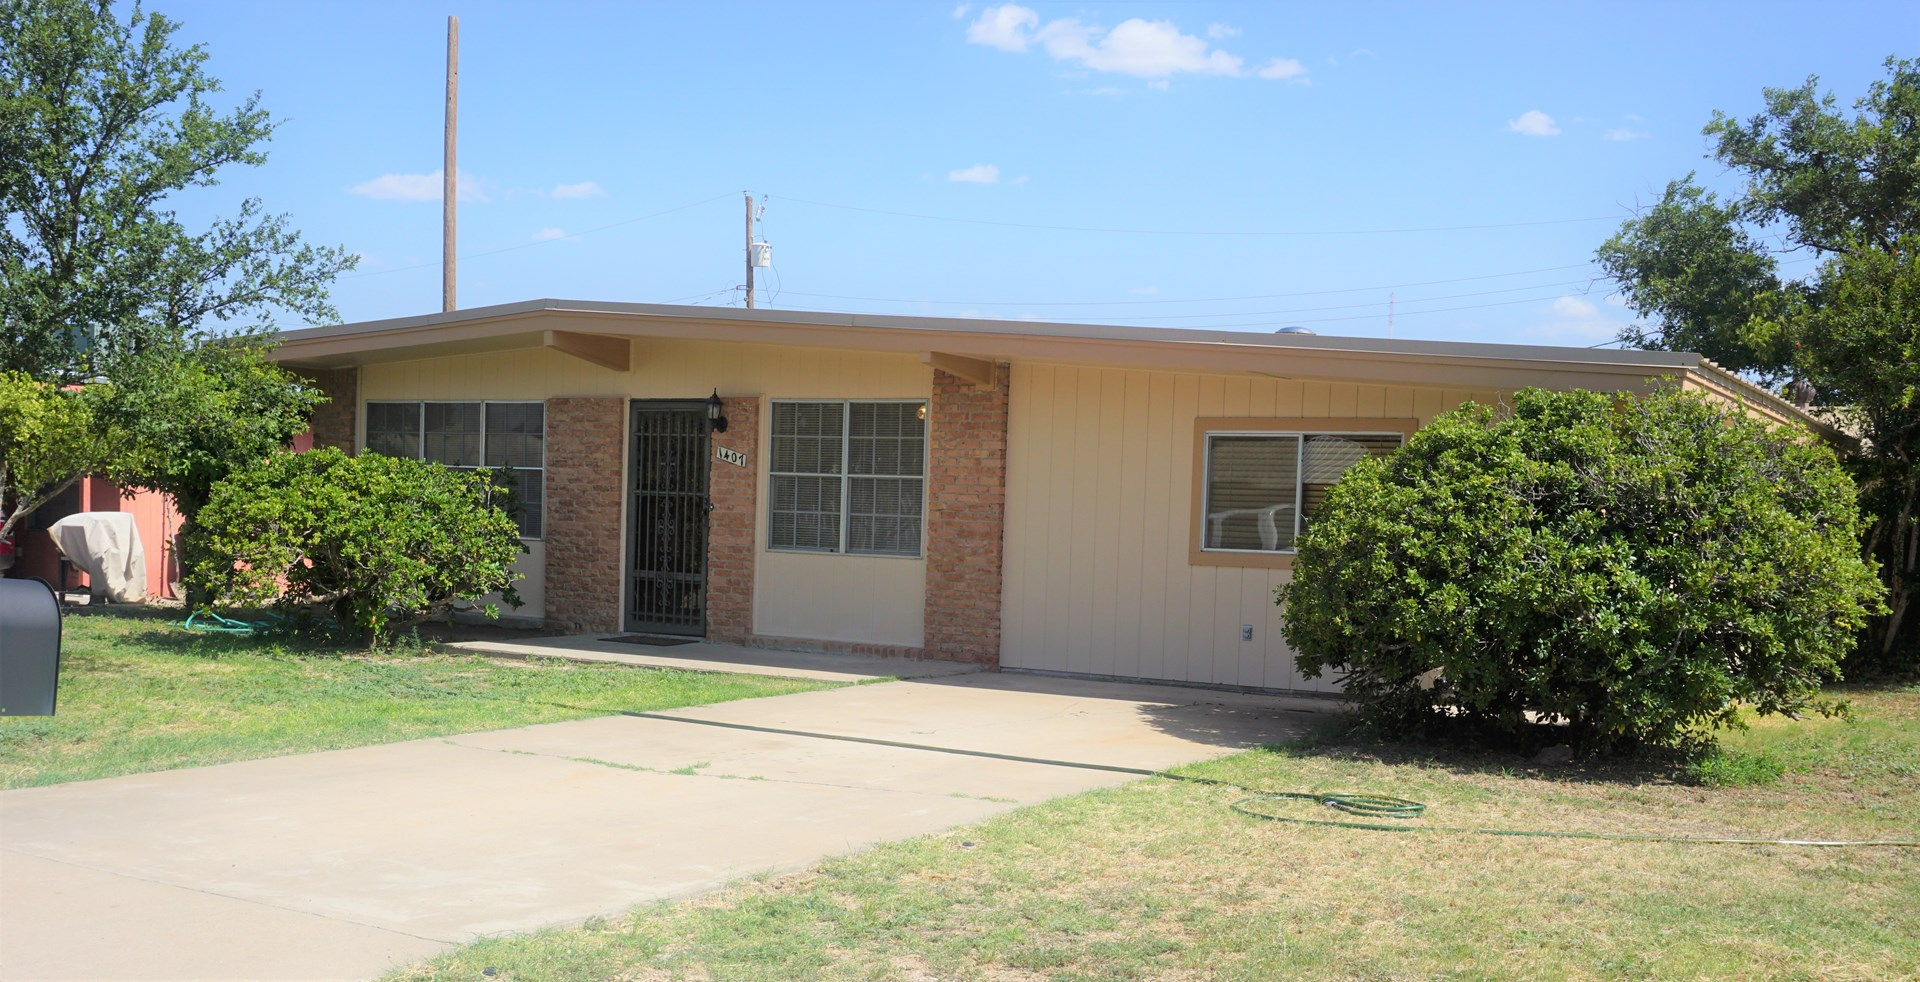 1407 W James - For Sale in Fort Stockton, TX